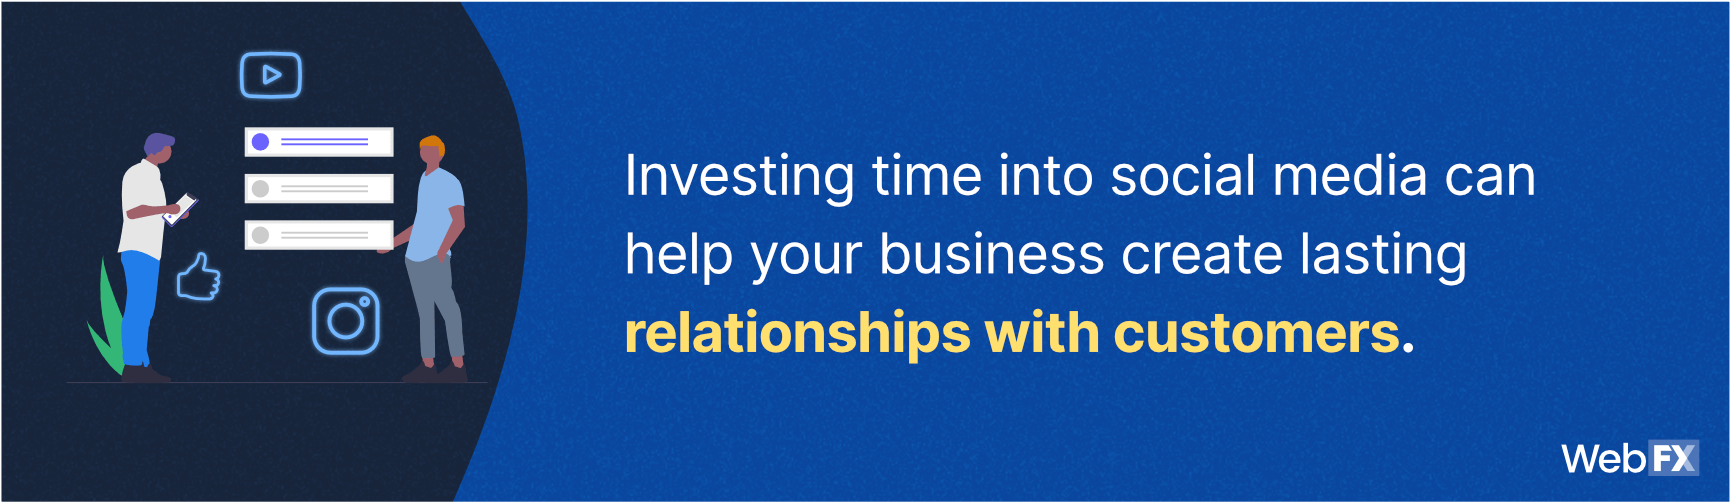 Investing time into social media can help your business create lasting relationships with customers